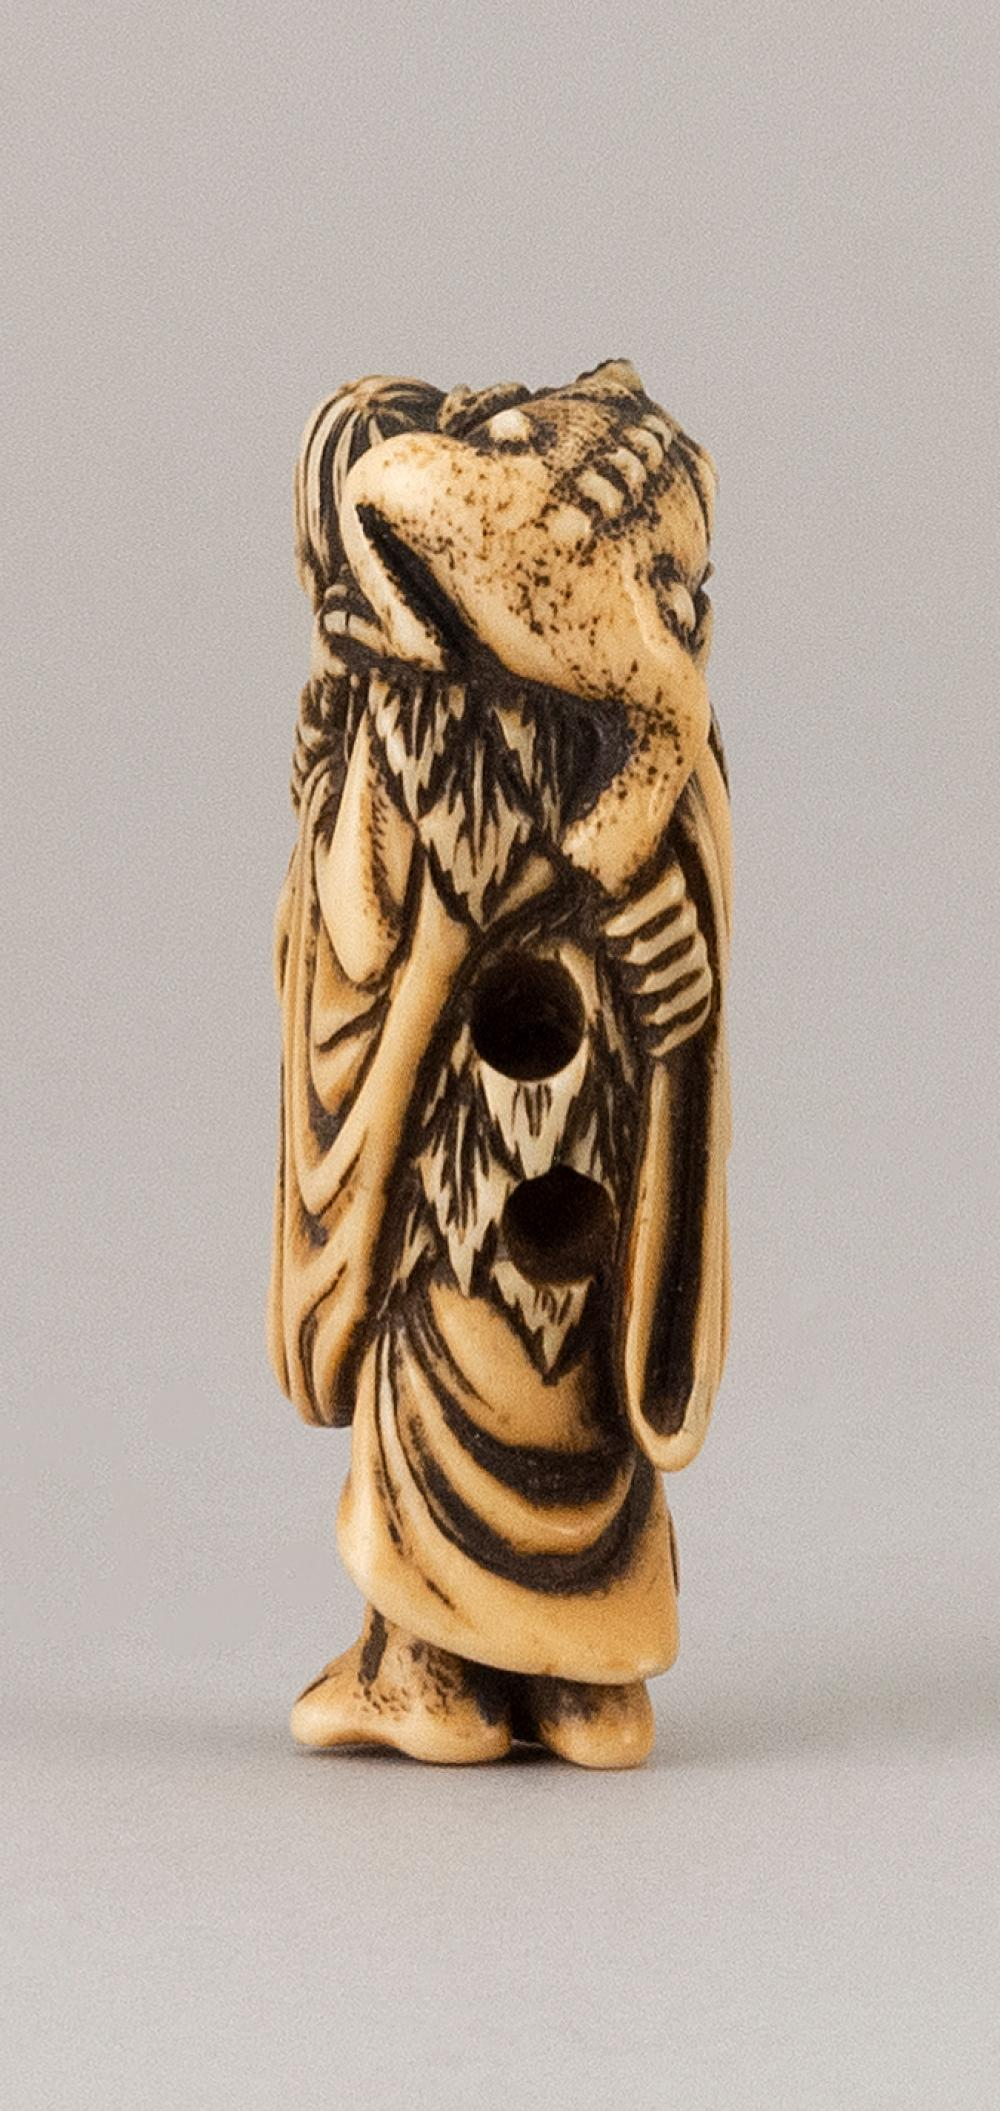 JAPANESE IVORY NETSUKE In the form of Gama Sennin carrying a large toad on his back. Height 2.1